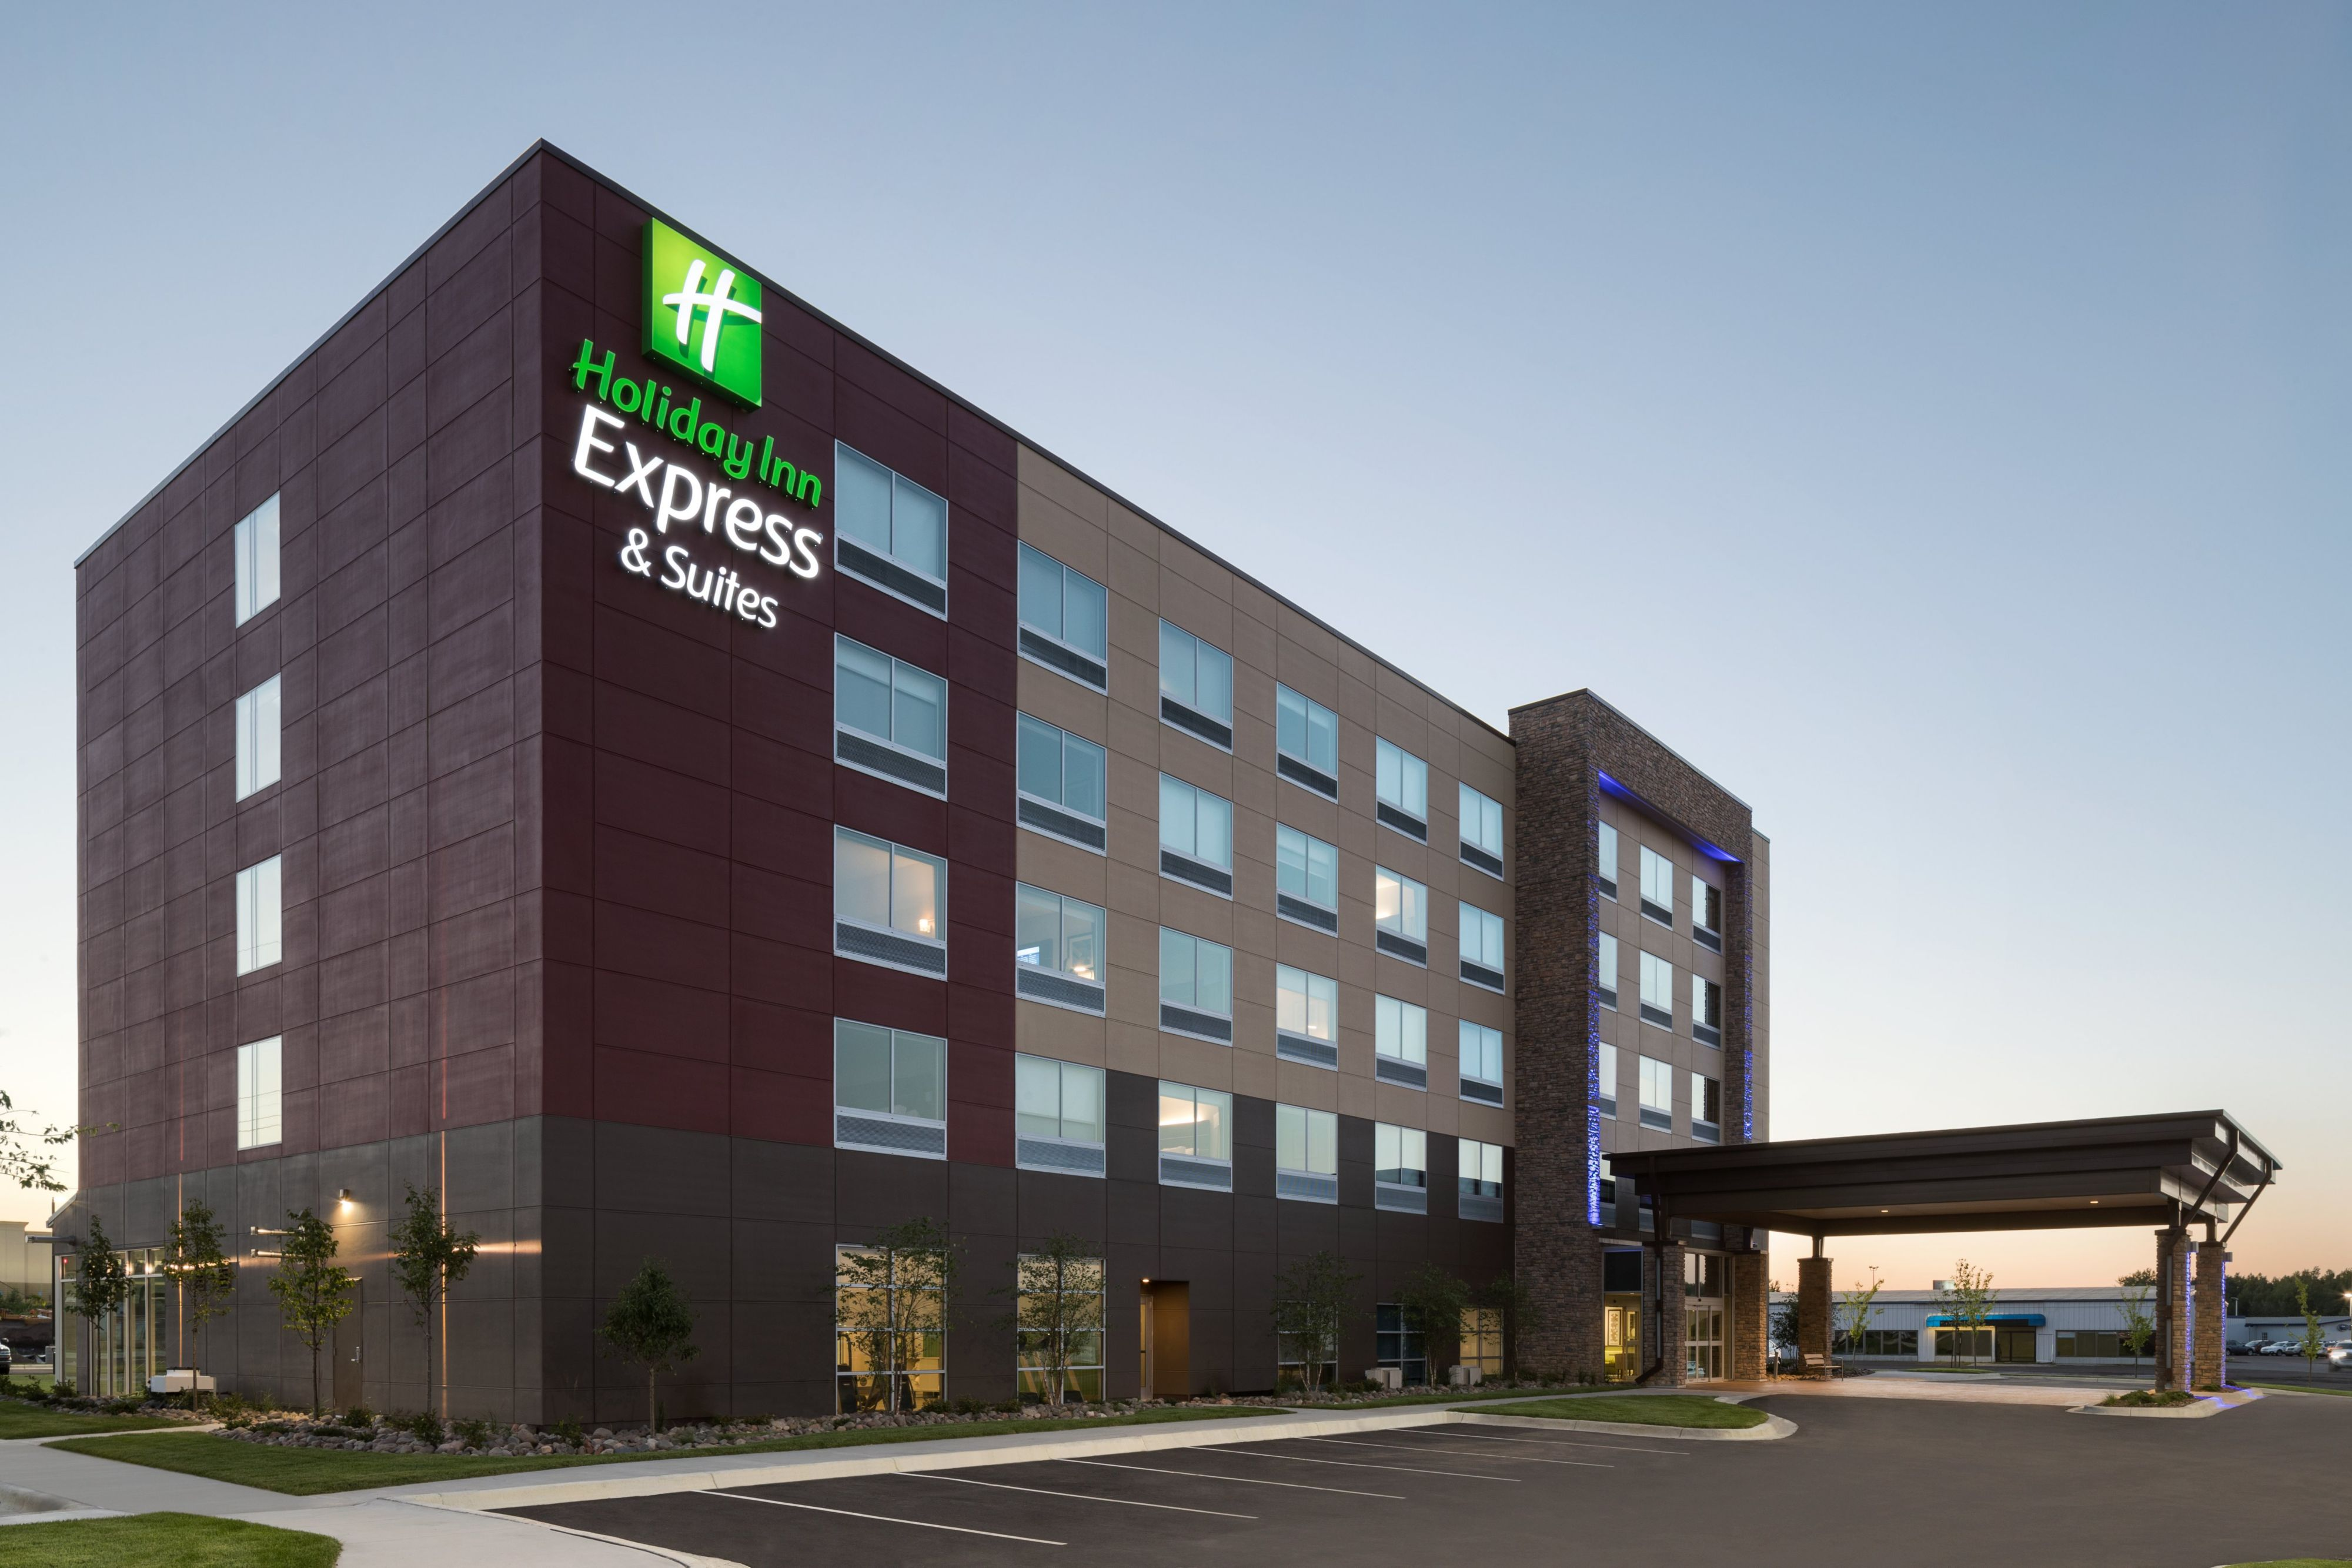 Holiday Inn Express Amp Suites Dubuque West Dubuque Iowa